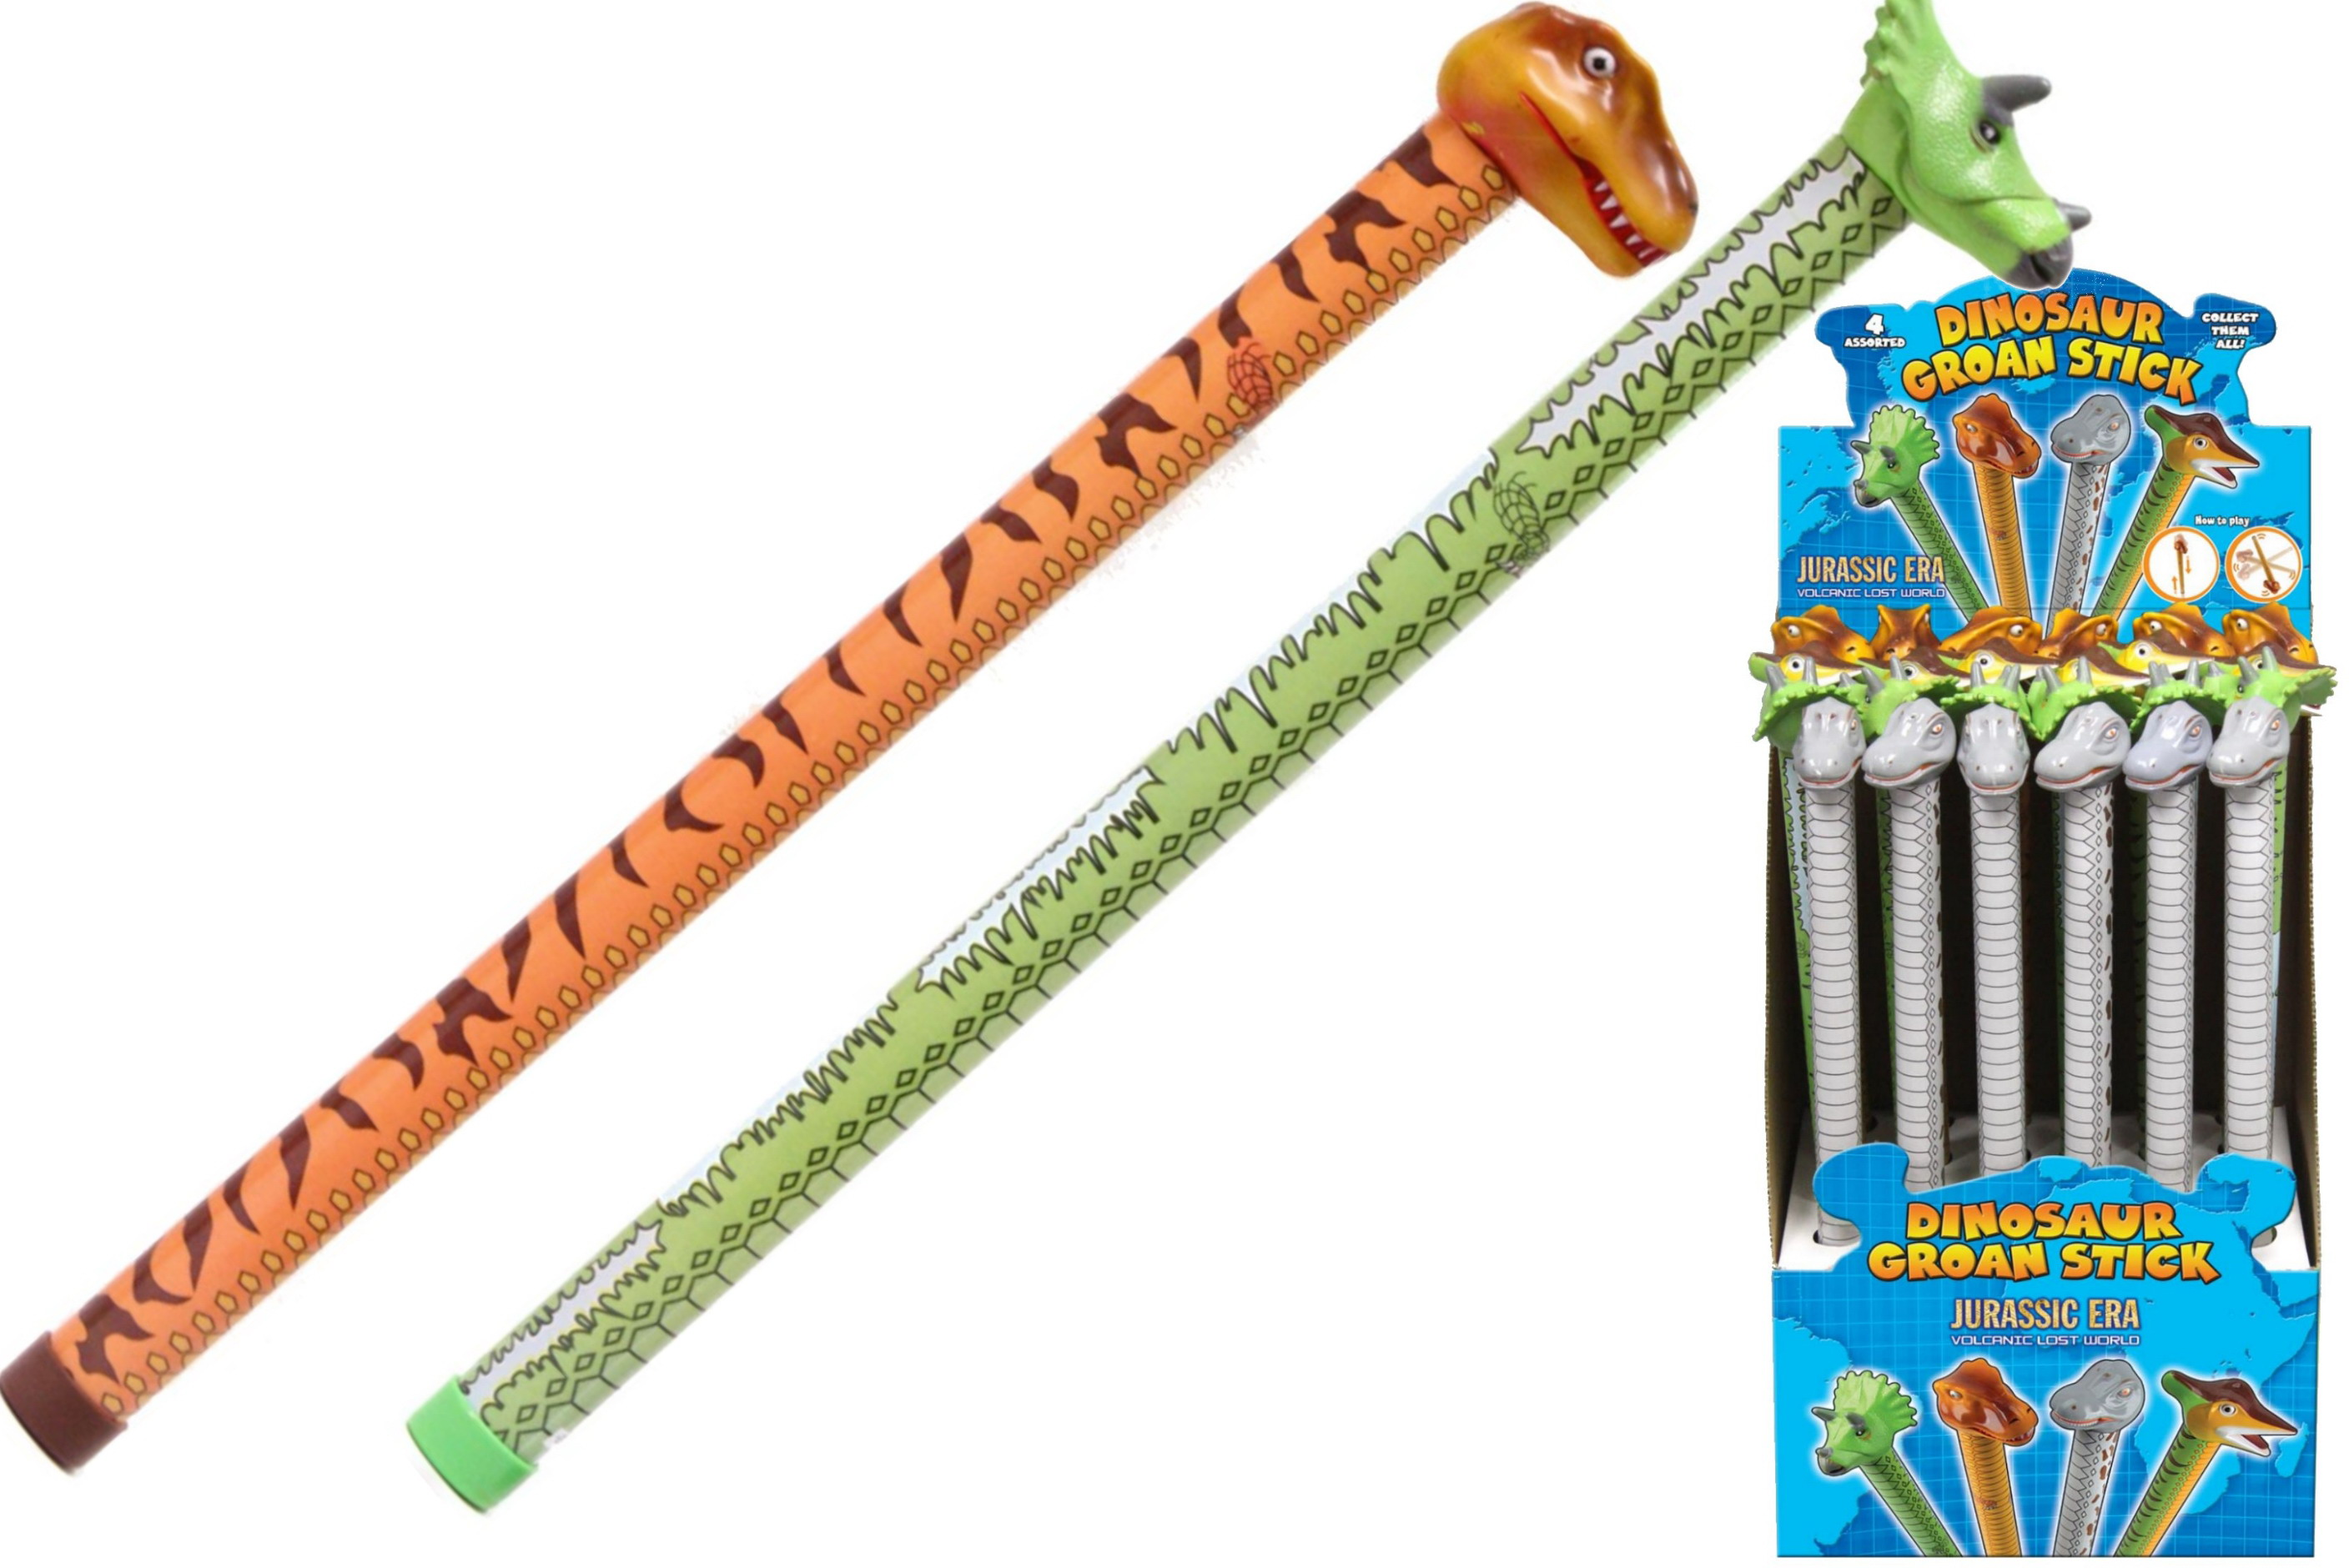 Dinosaur Groan Stick (4 Assorted) In Display Box